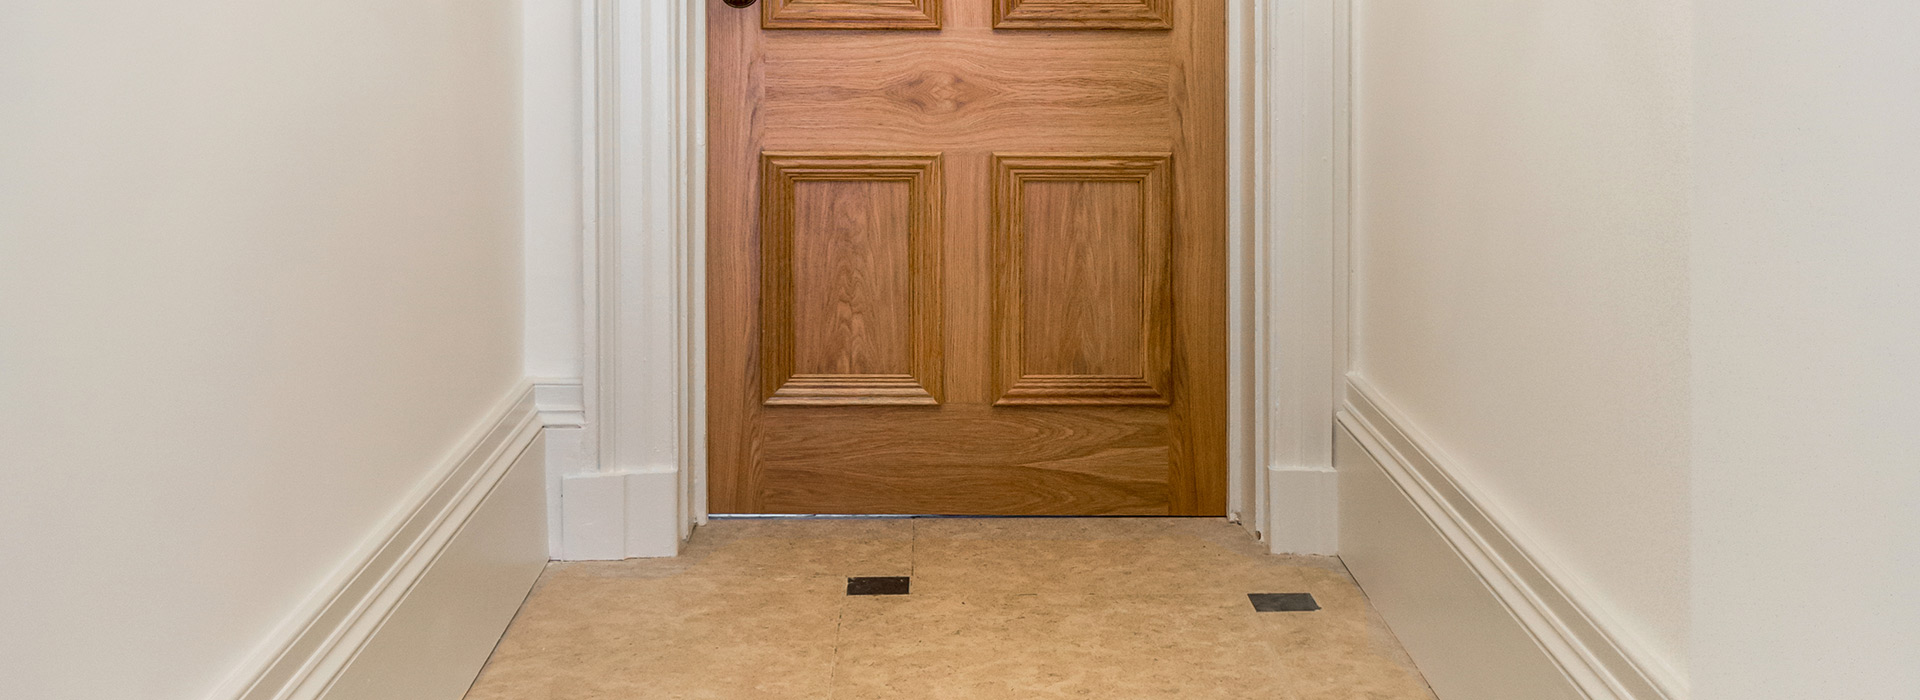 Oak Kensington door by Doorsan